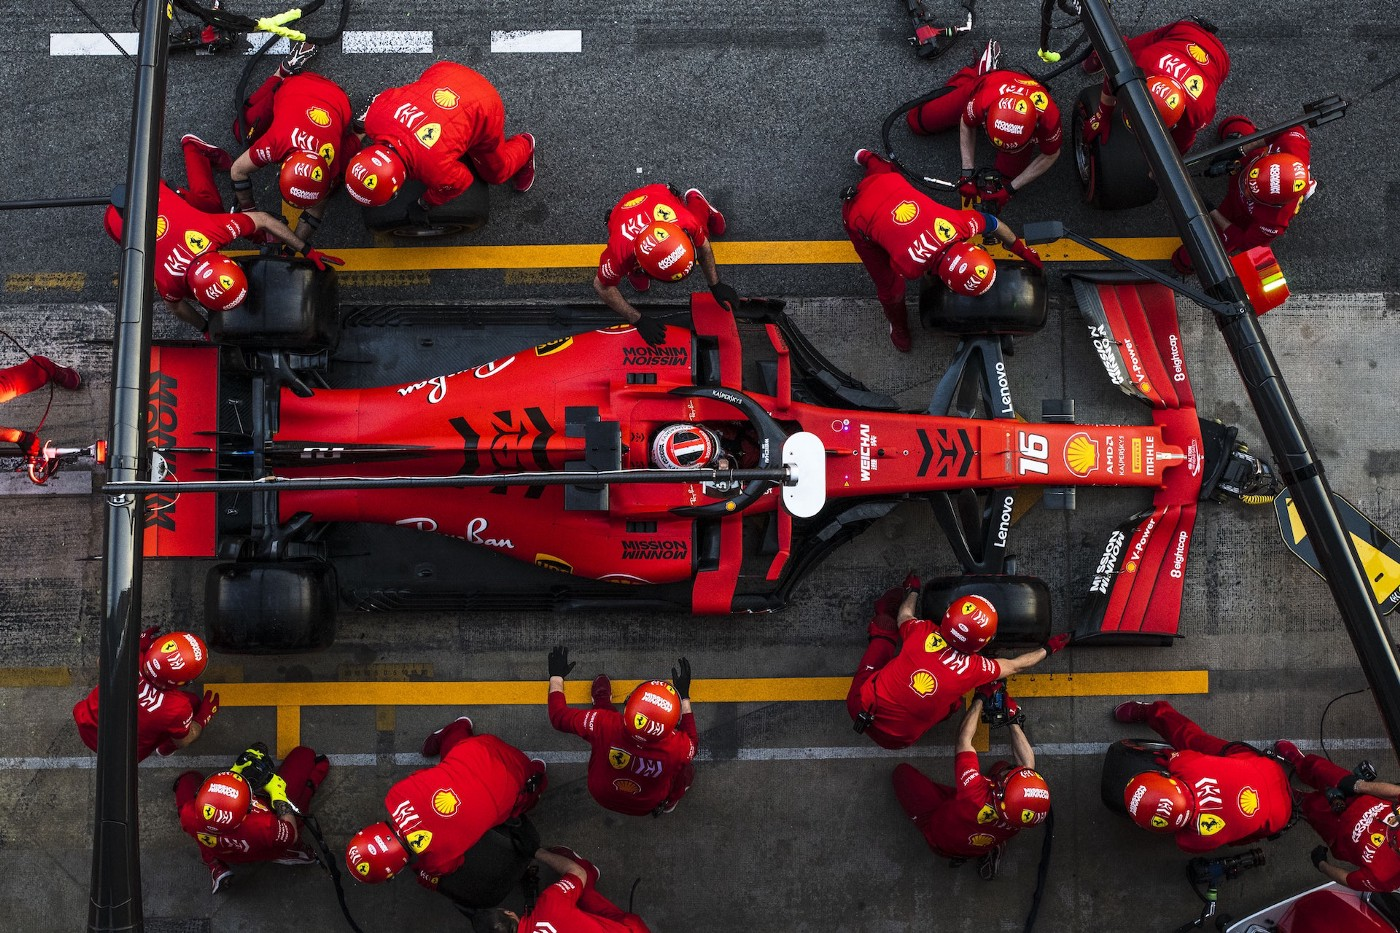 F1 pit stop crew at work.